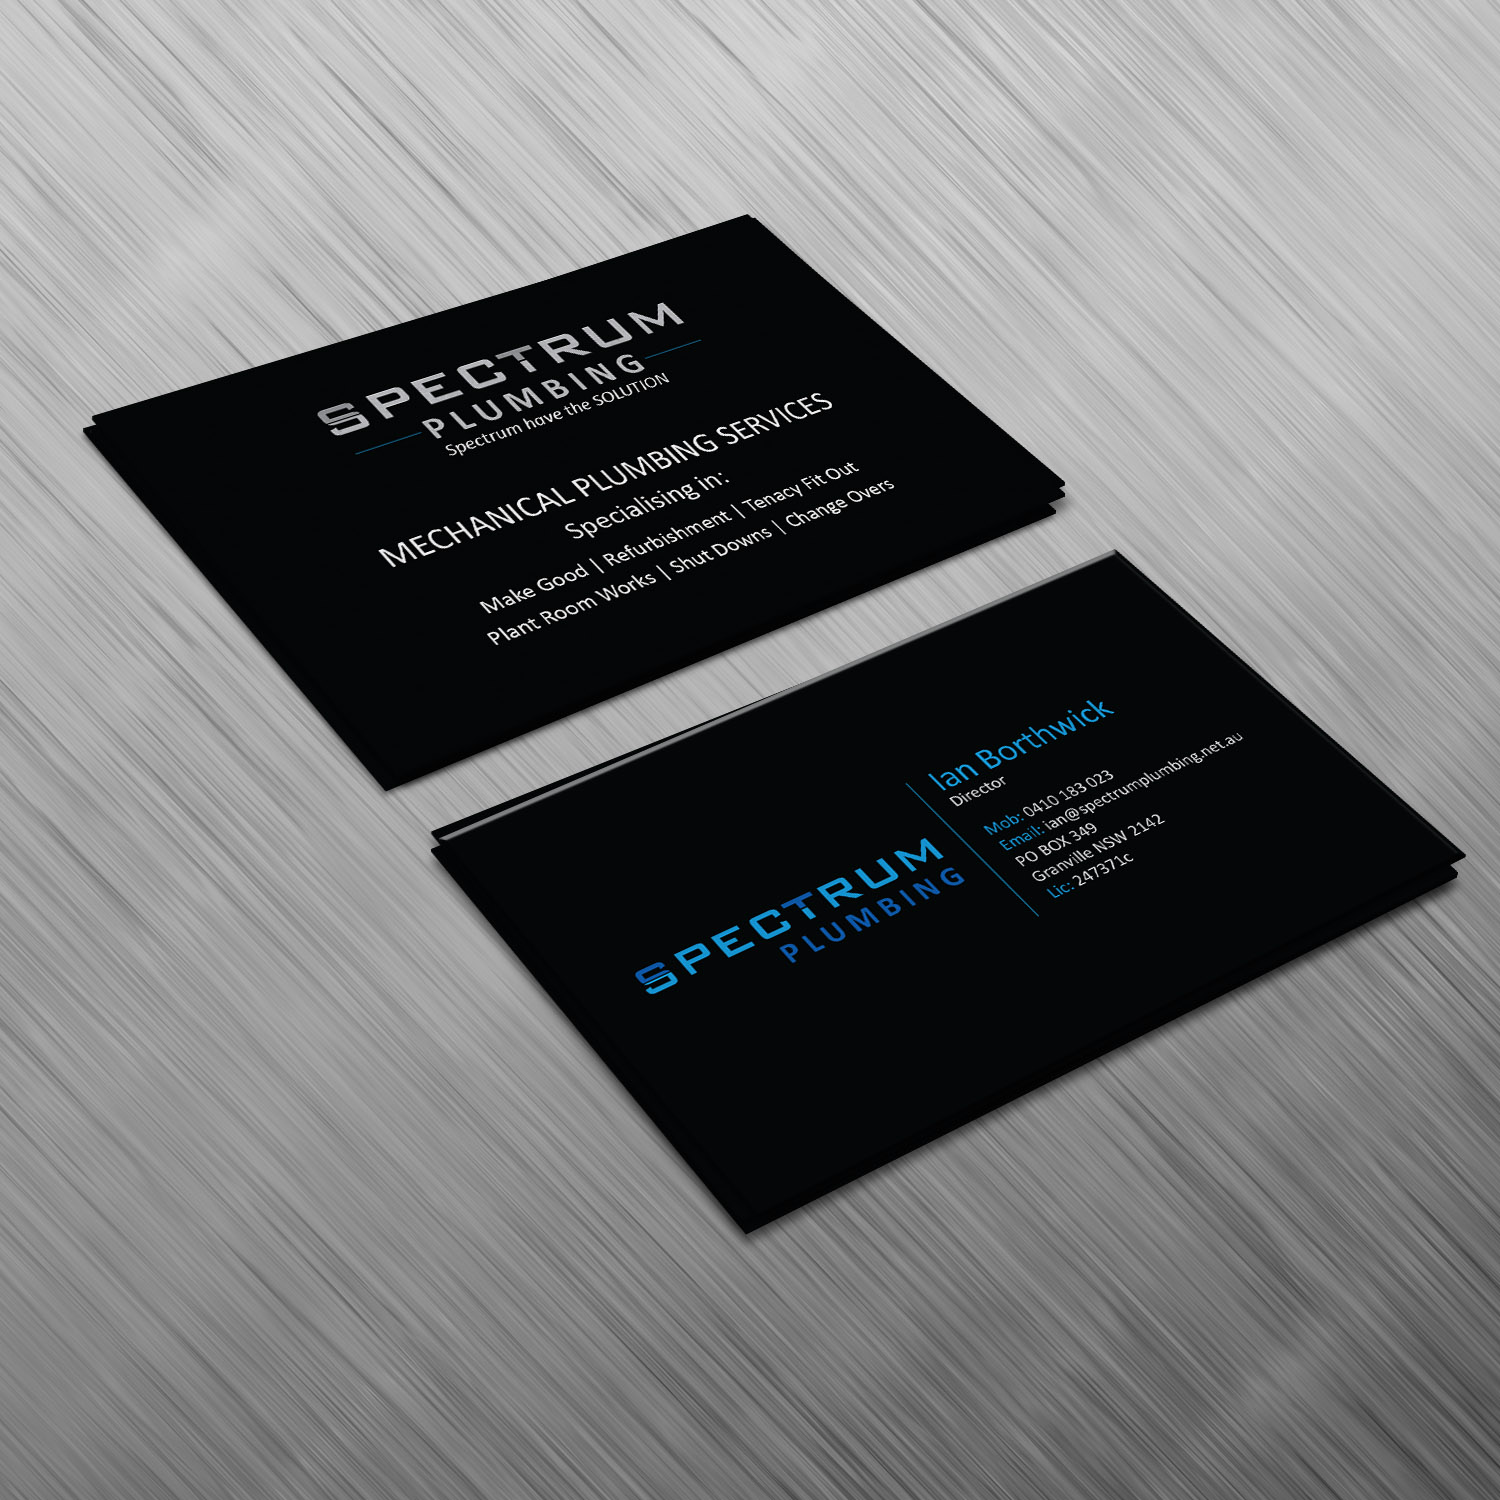 Professional serious plumbing business card design for spectrum business card design by creative jiniya for spectrum plumbing design 17947491 colourmoves